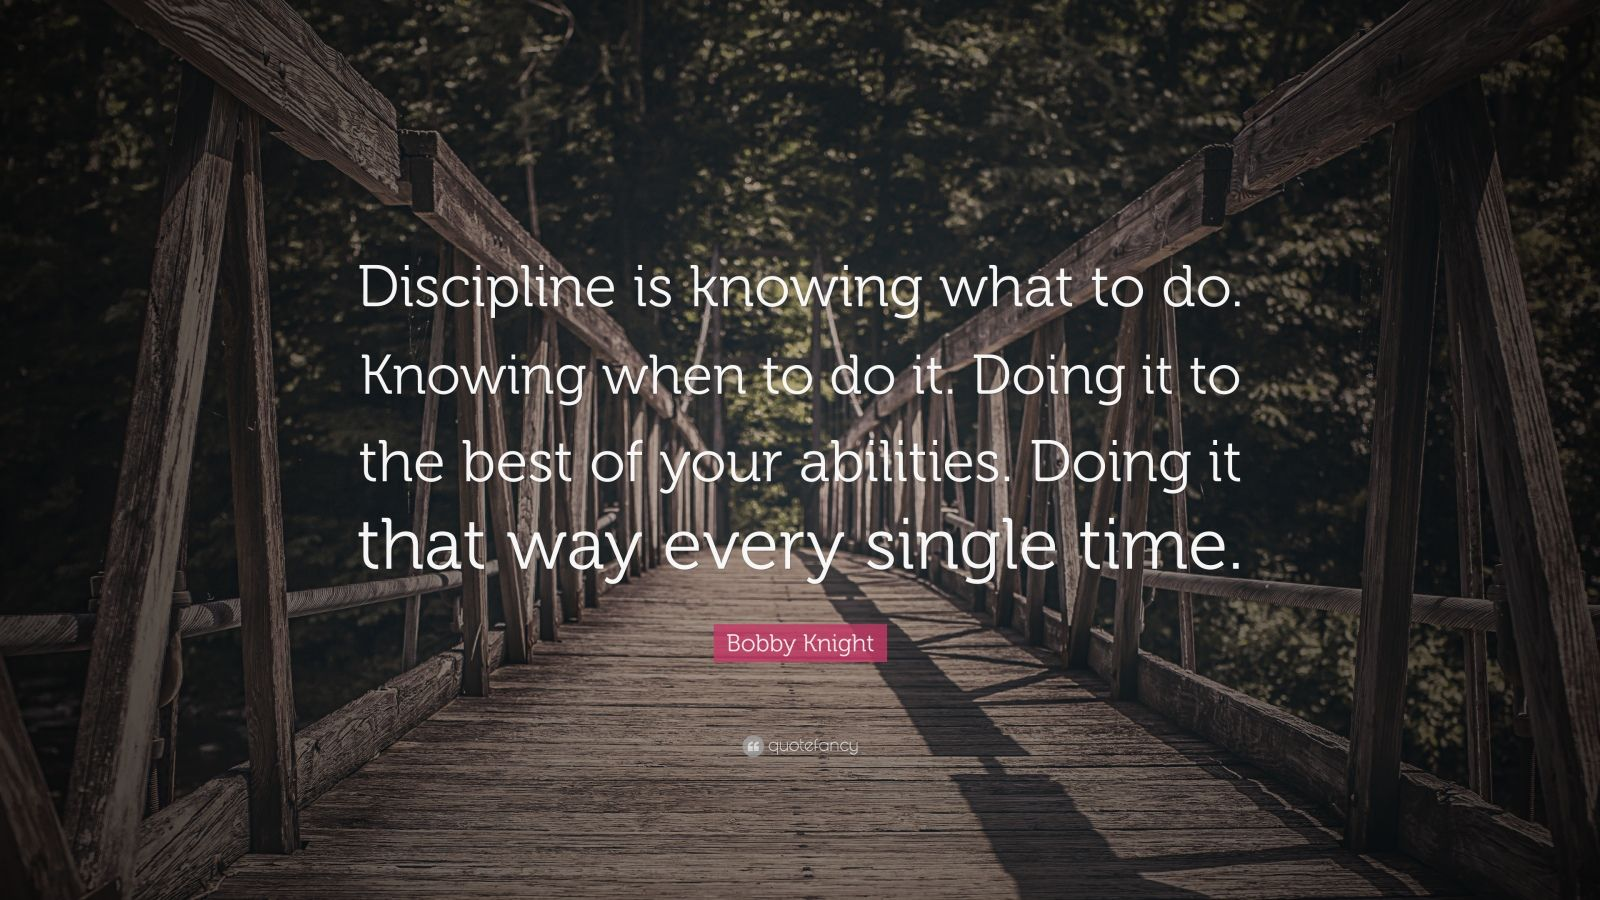 """Bobby Knight Quote: """"Discipline is knowing what to do. Knowing when to do it. Doing it to the best of your abilities. Doing it that way every single time."""""""